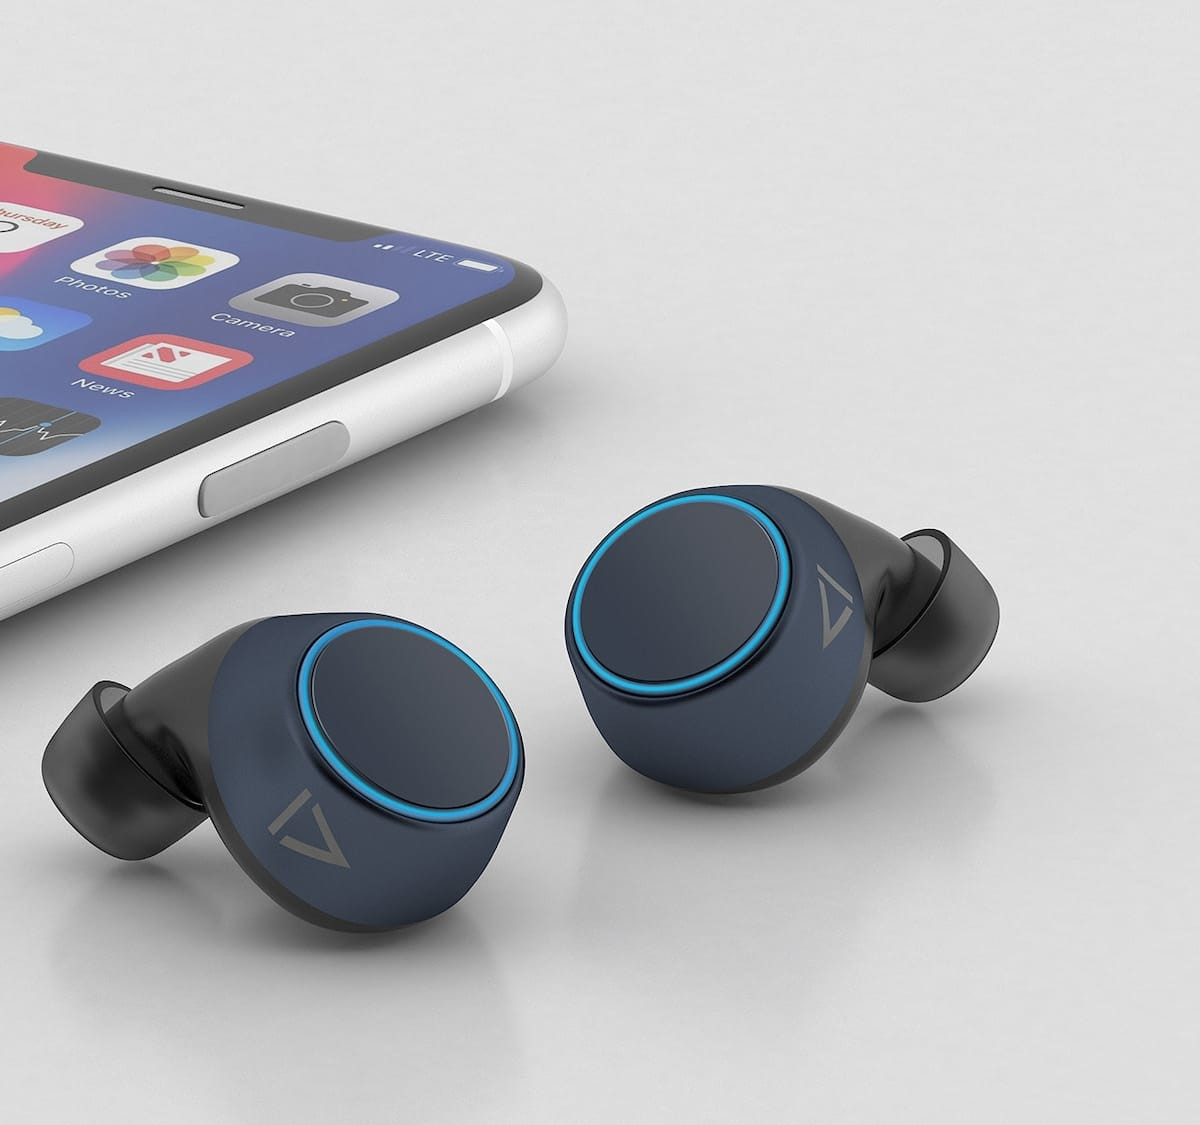 Creative Outlier Air V2 sweatproof earbuds offer up to 34 hours of total playtime